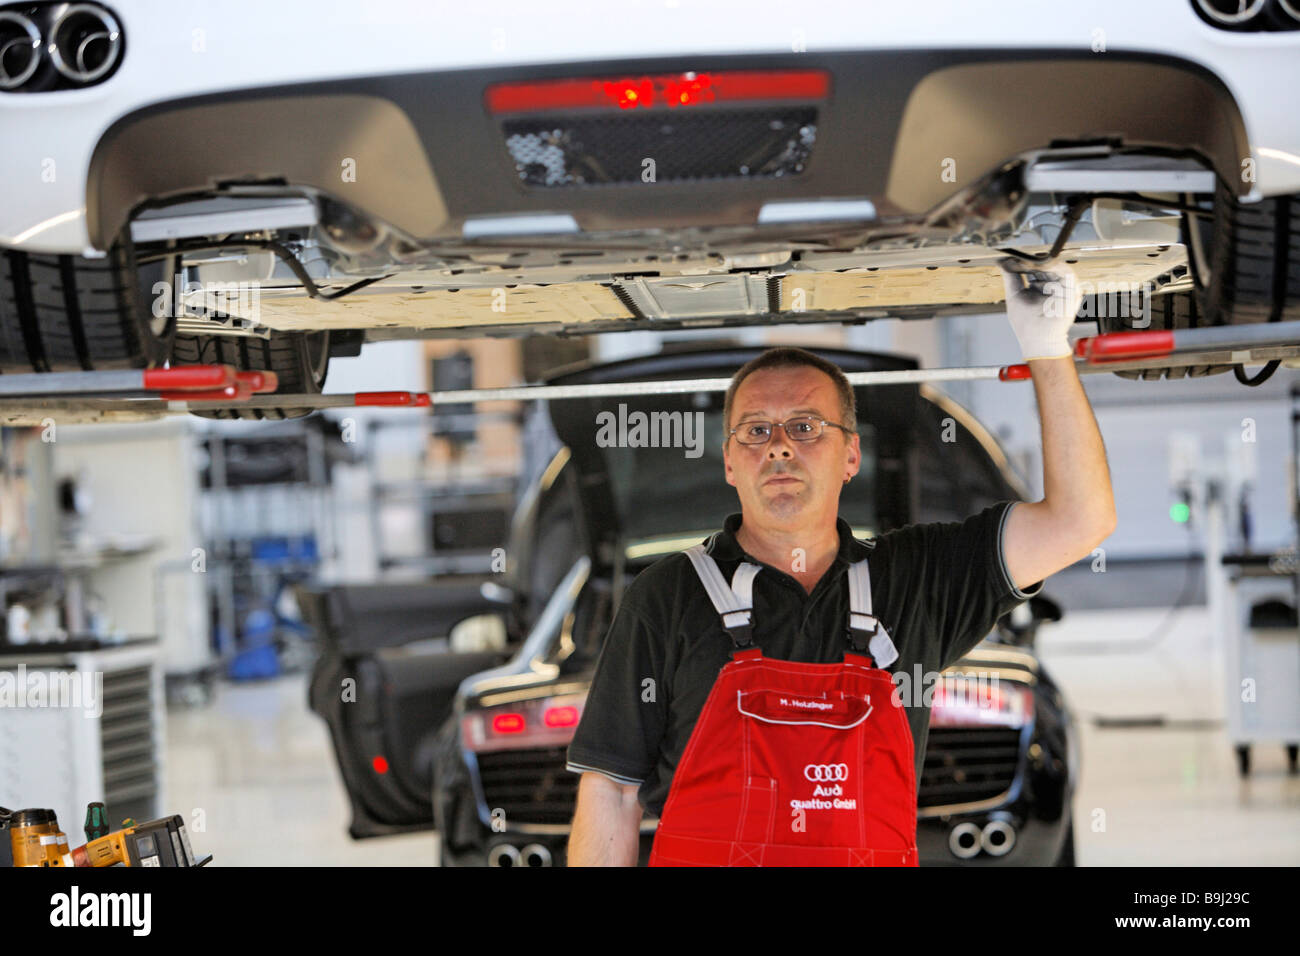 A Silverliner is an employee over 40, here during night shift at Audi R8 construction at the Audi Plant in Neckarsulm, - Stock Image